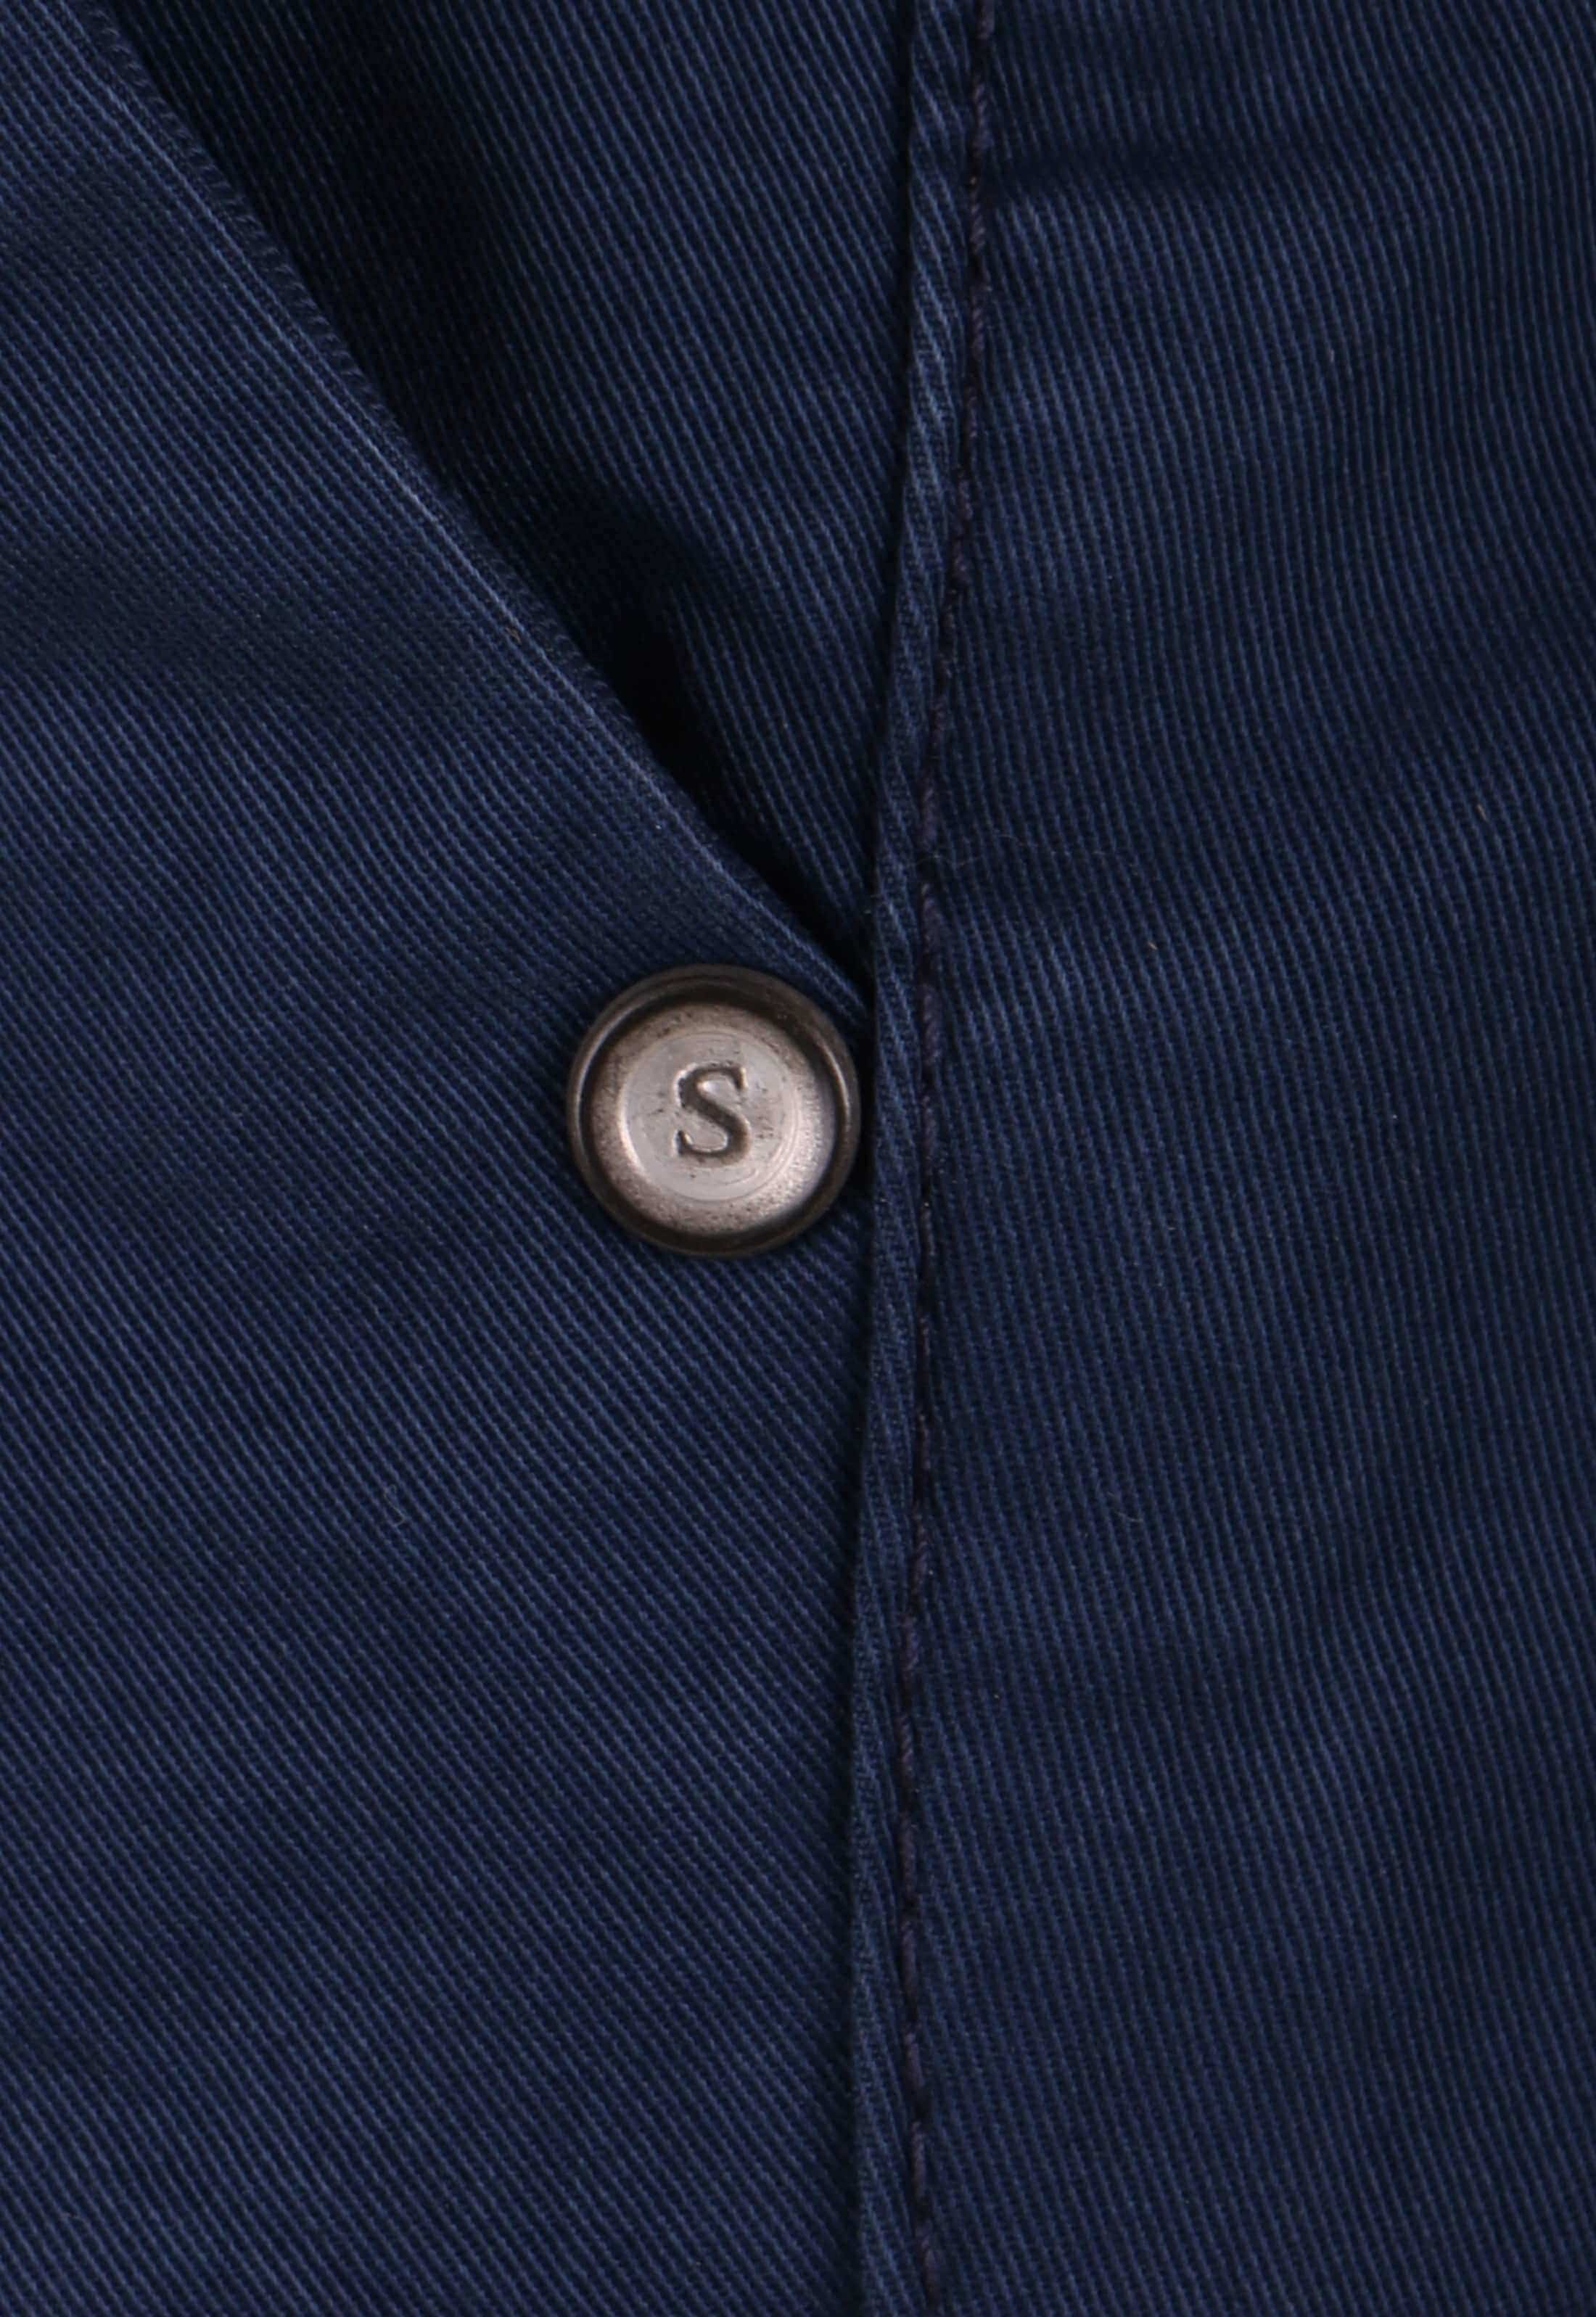 Suitable Chino Broek Donkerblauw foto 3